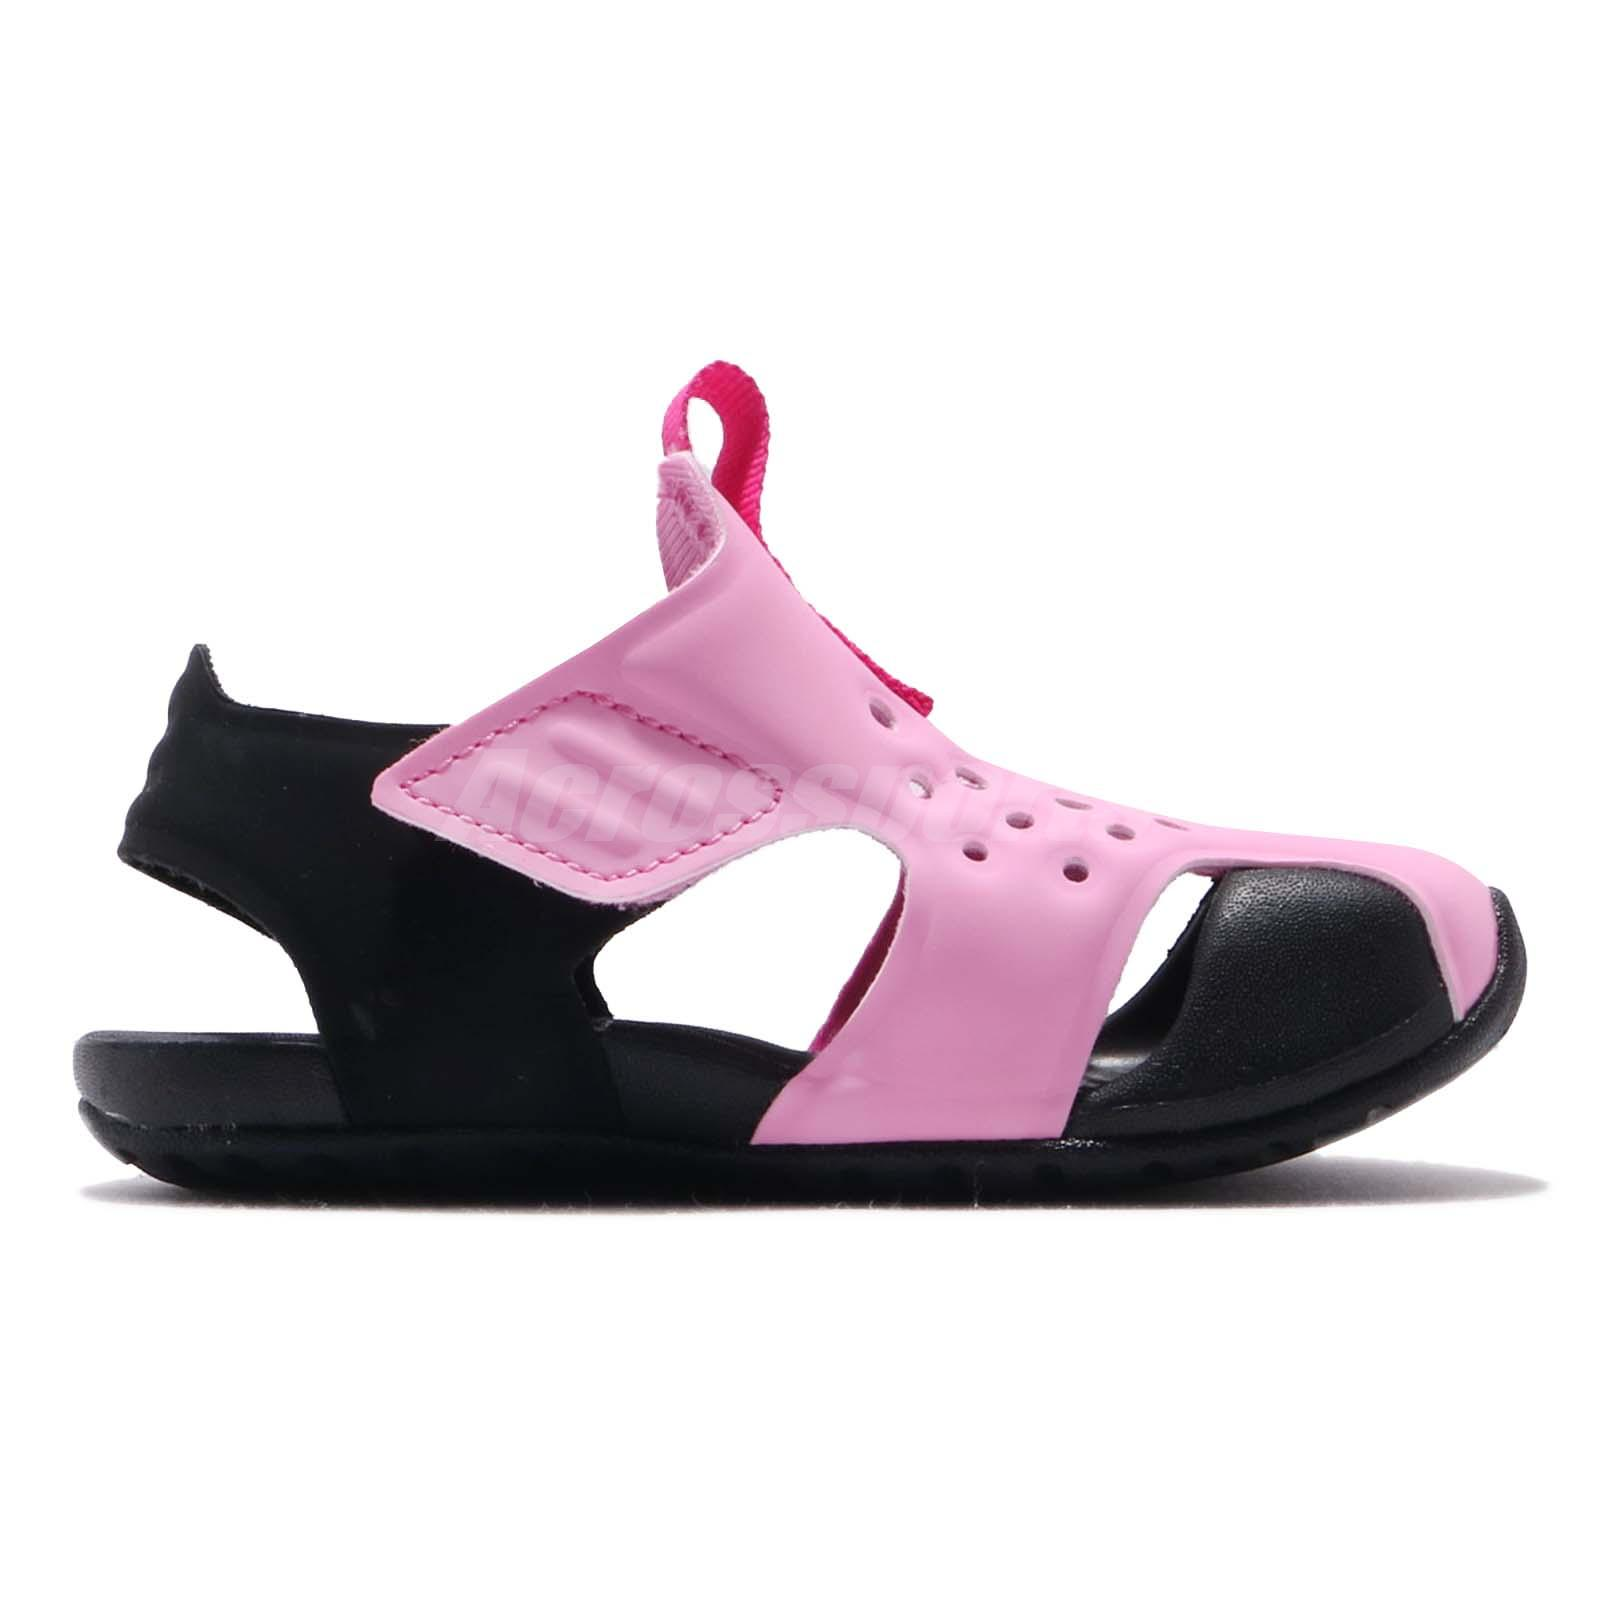 5e29fba8a4a7 Nike Sunray Protect 2 TD Psychic Pink Toddler Infant Sandals Shoes ...